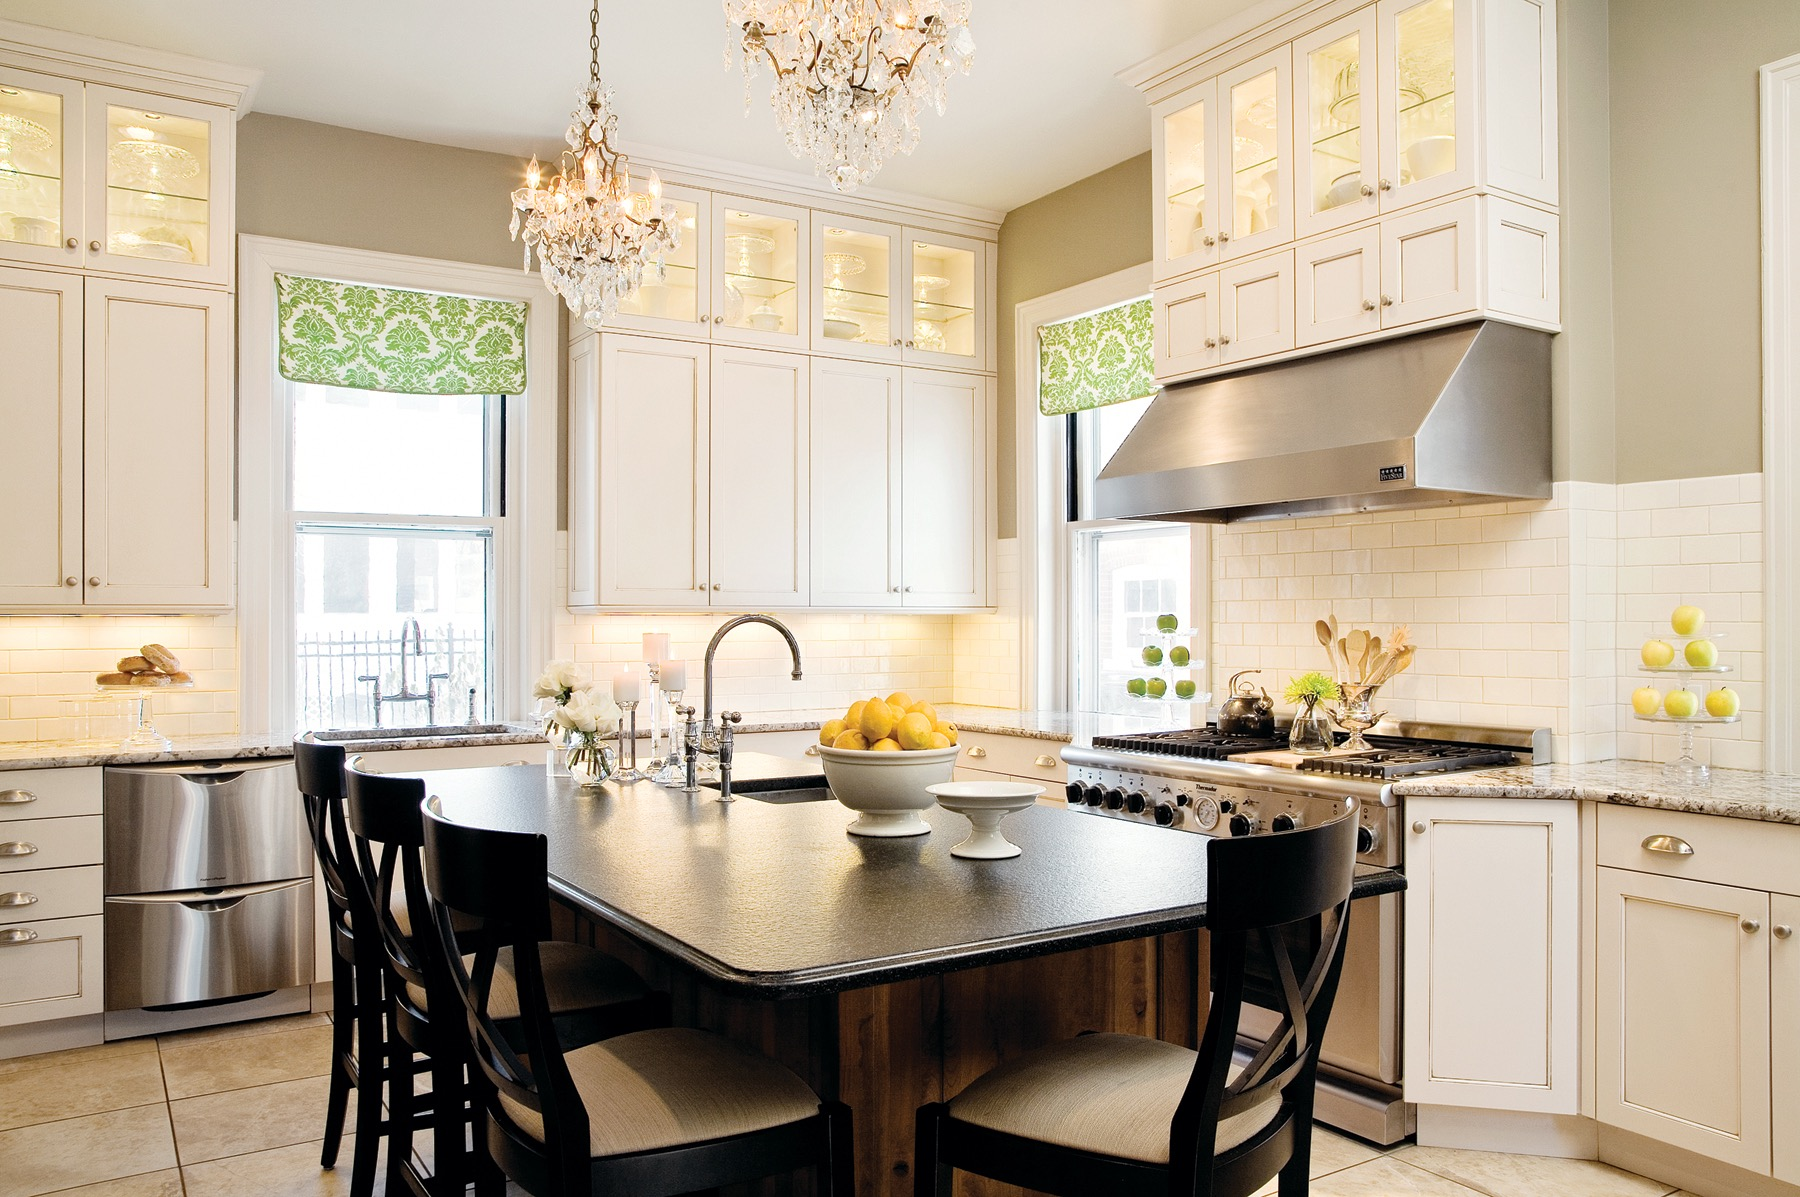 Beautiful Kitchen Crystal Chandelier Lighting (View 4 of 39)